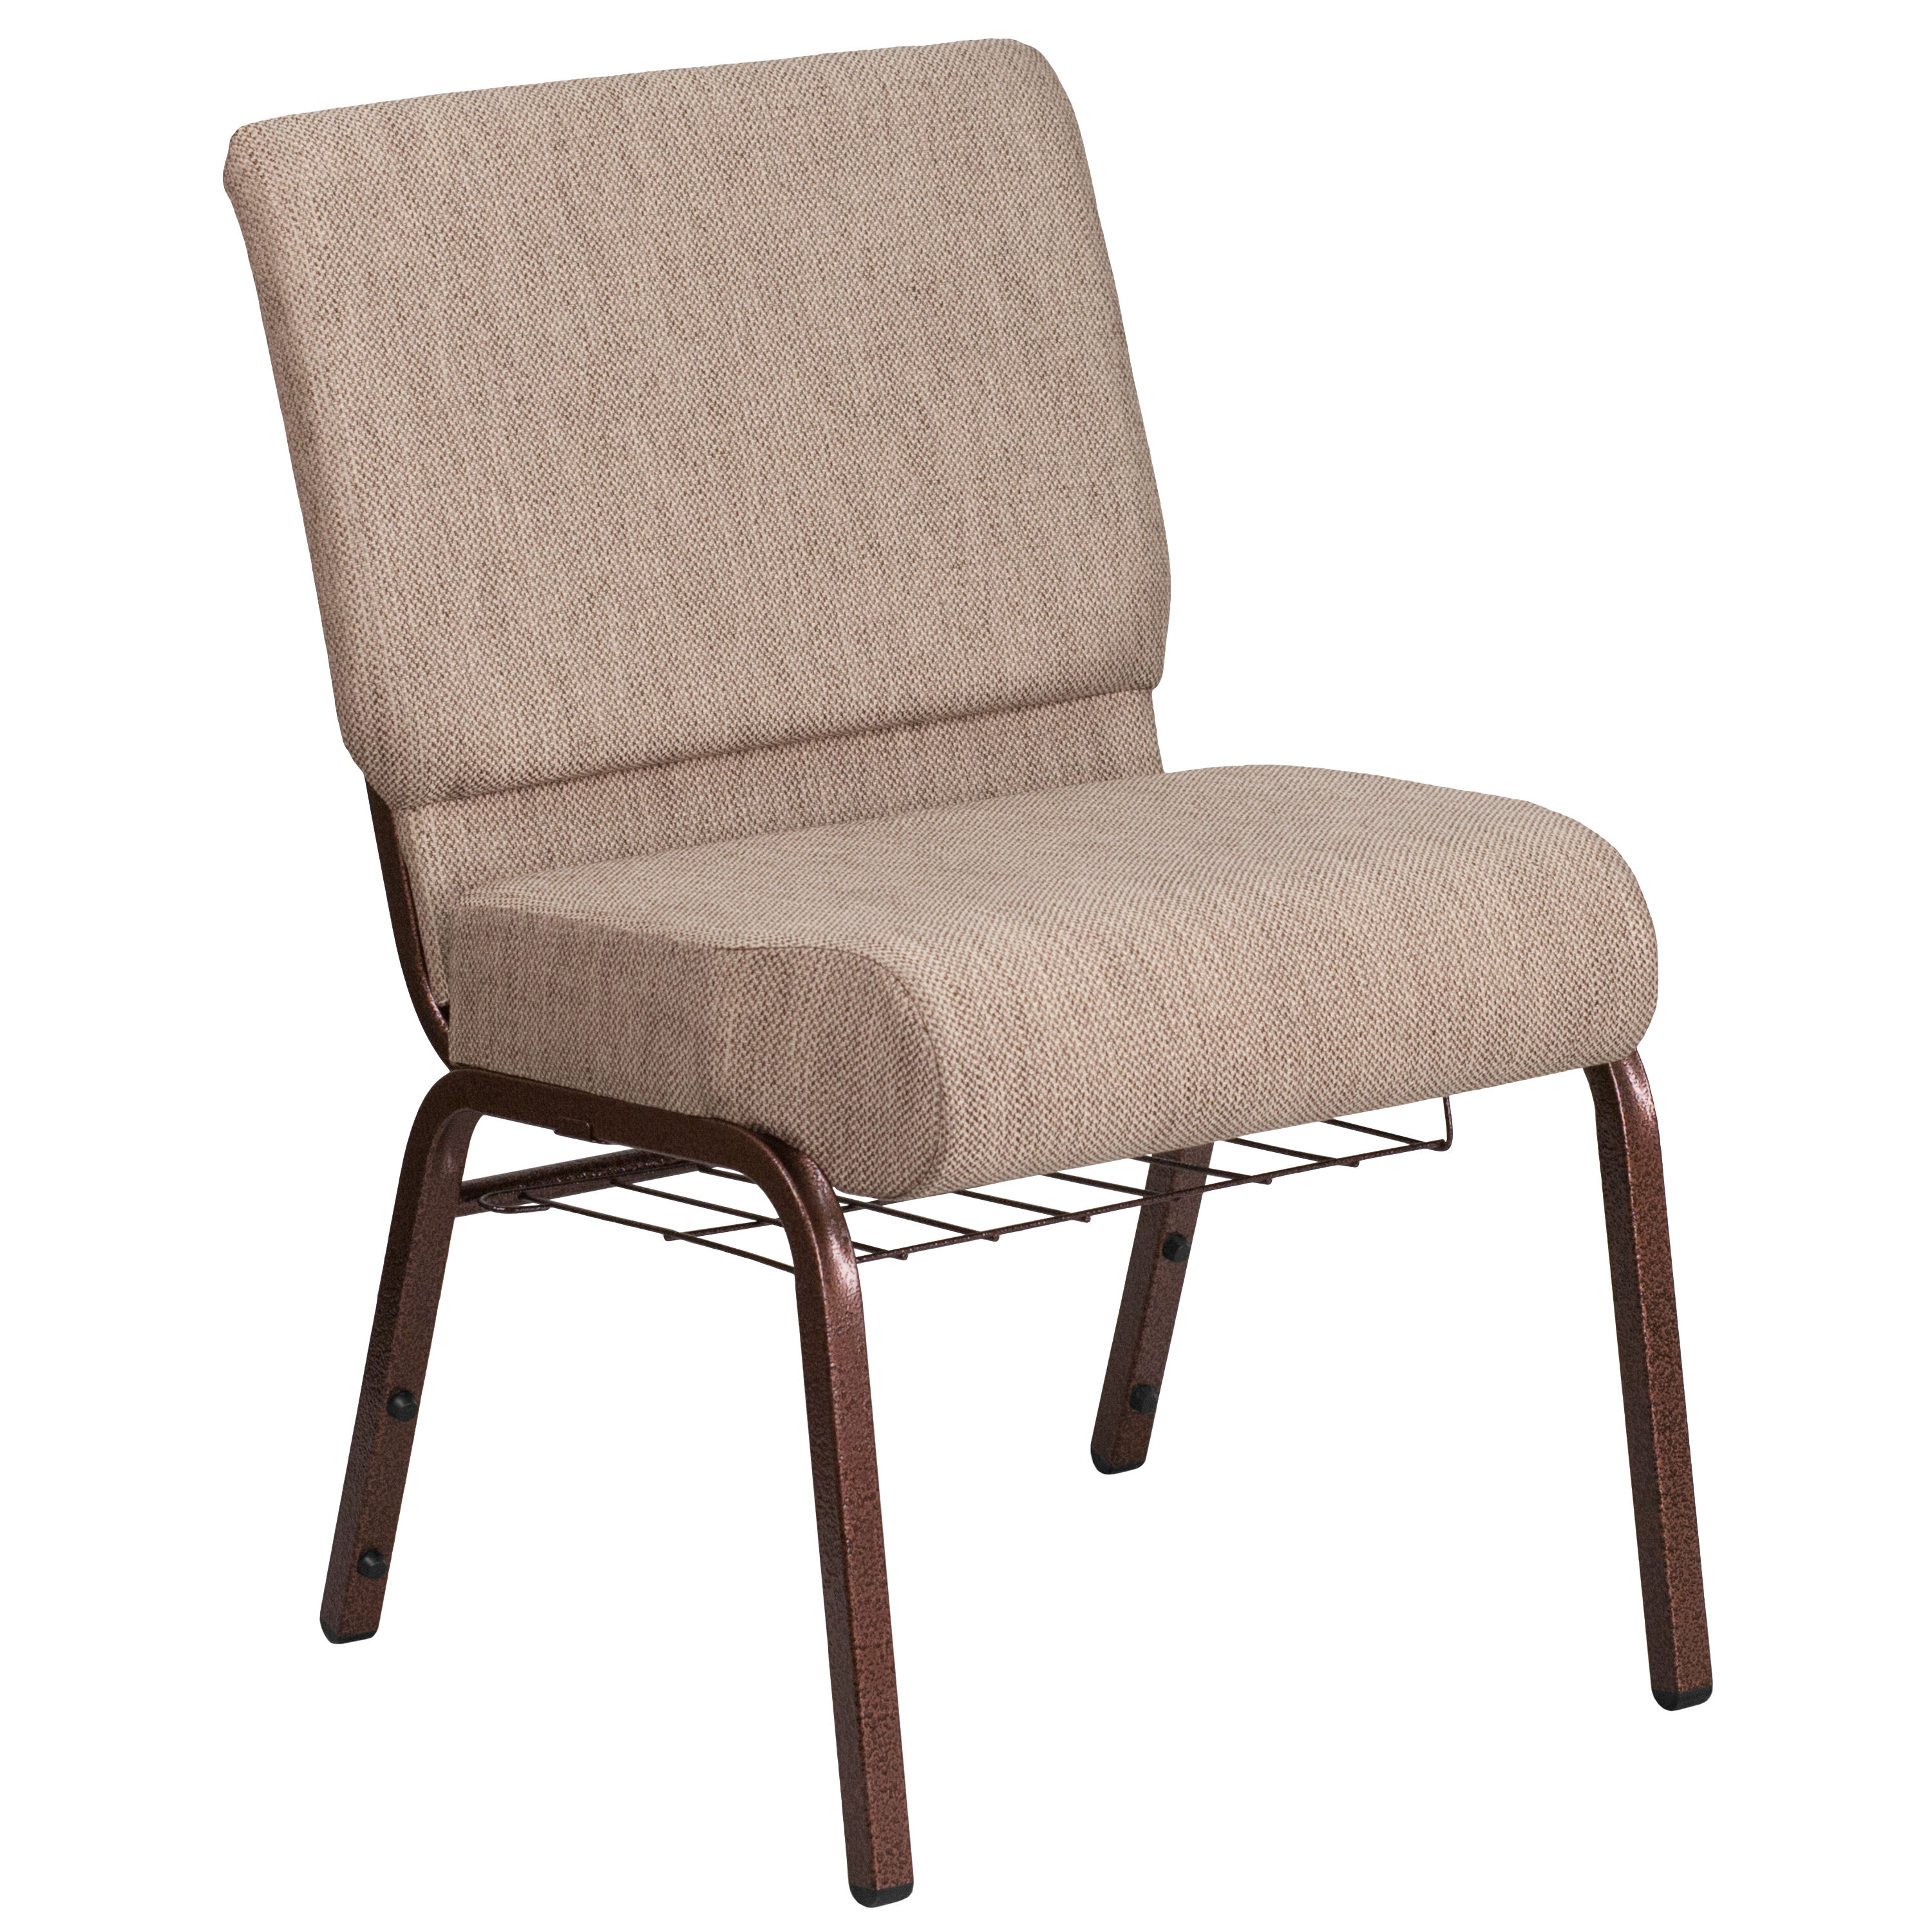 Beau Beige Fabric Church Chair FD CH0221 4 CV BGE1 BAS GG | ChurchChairs4Less.com